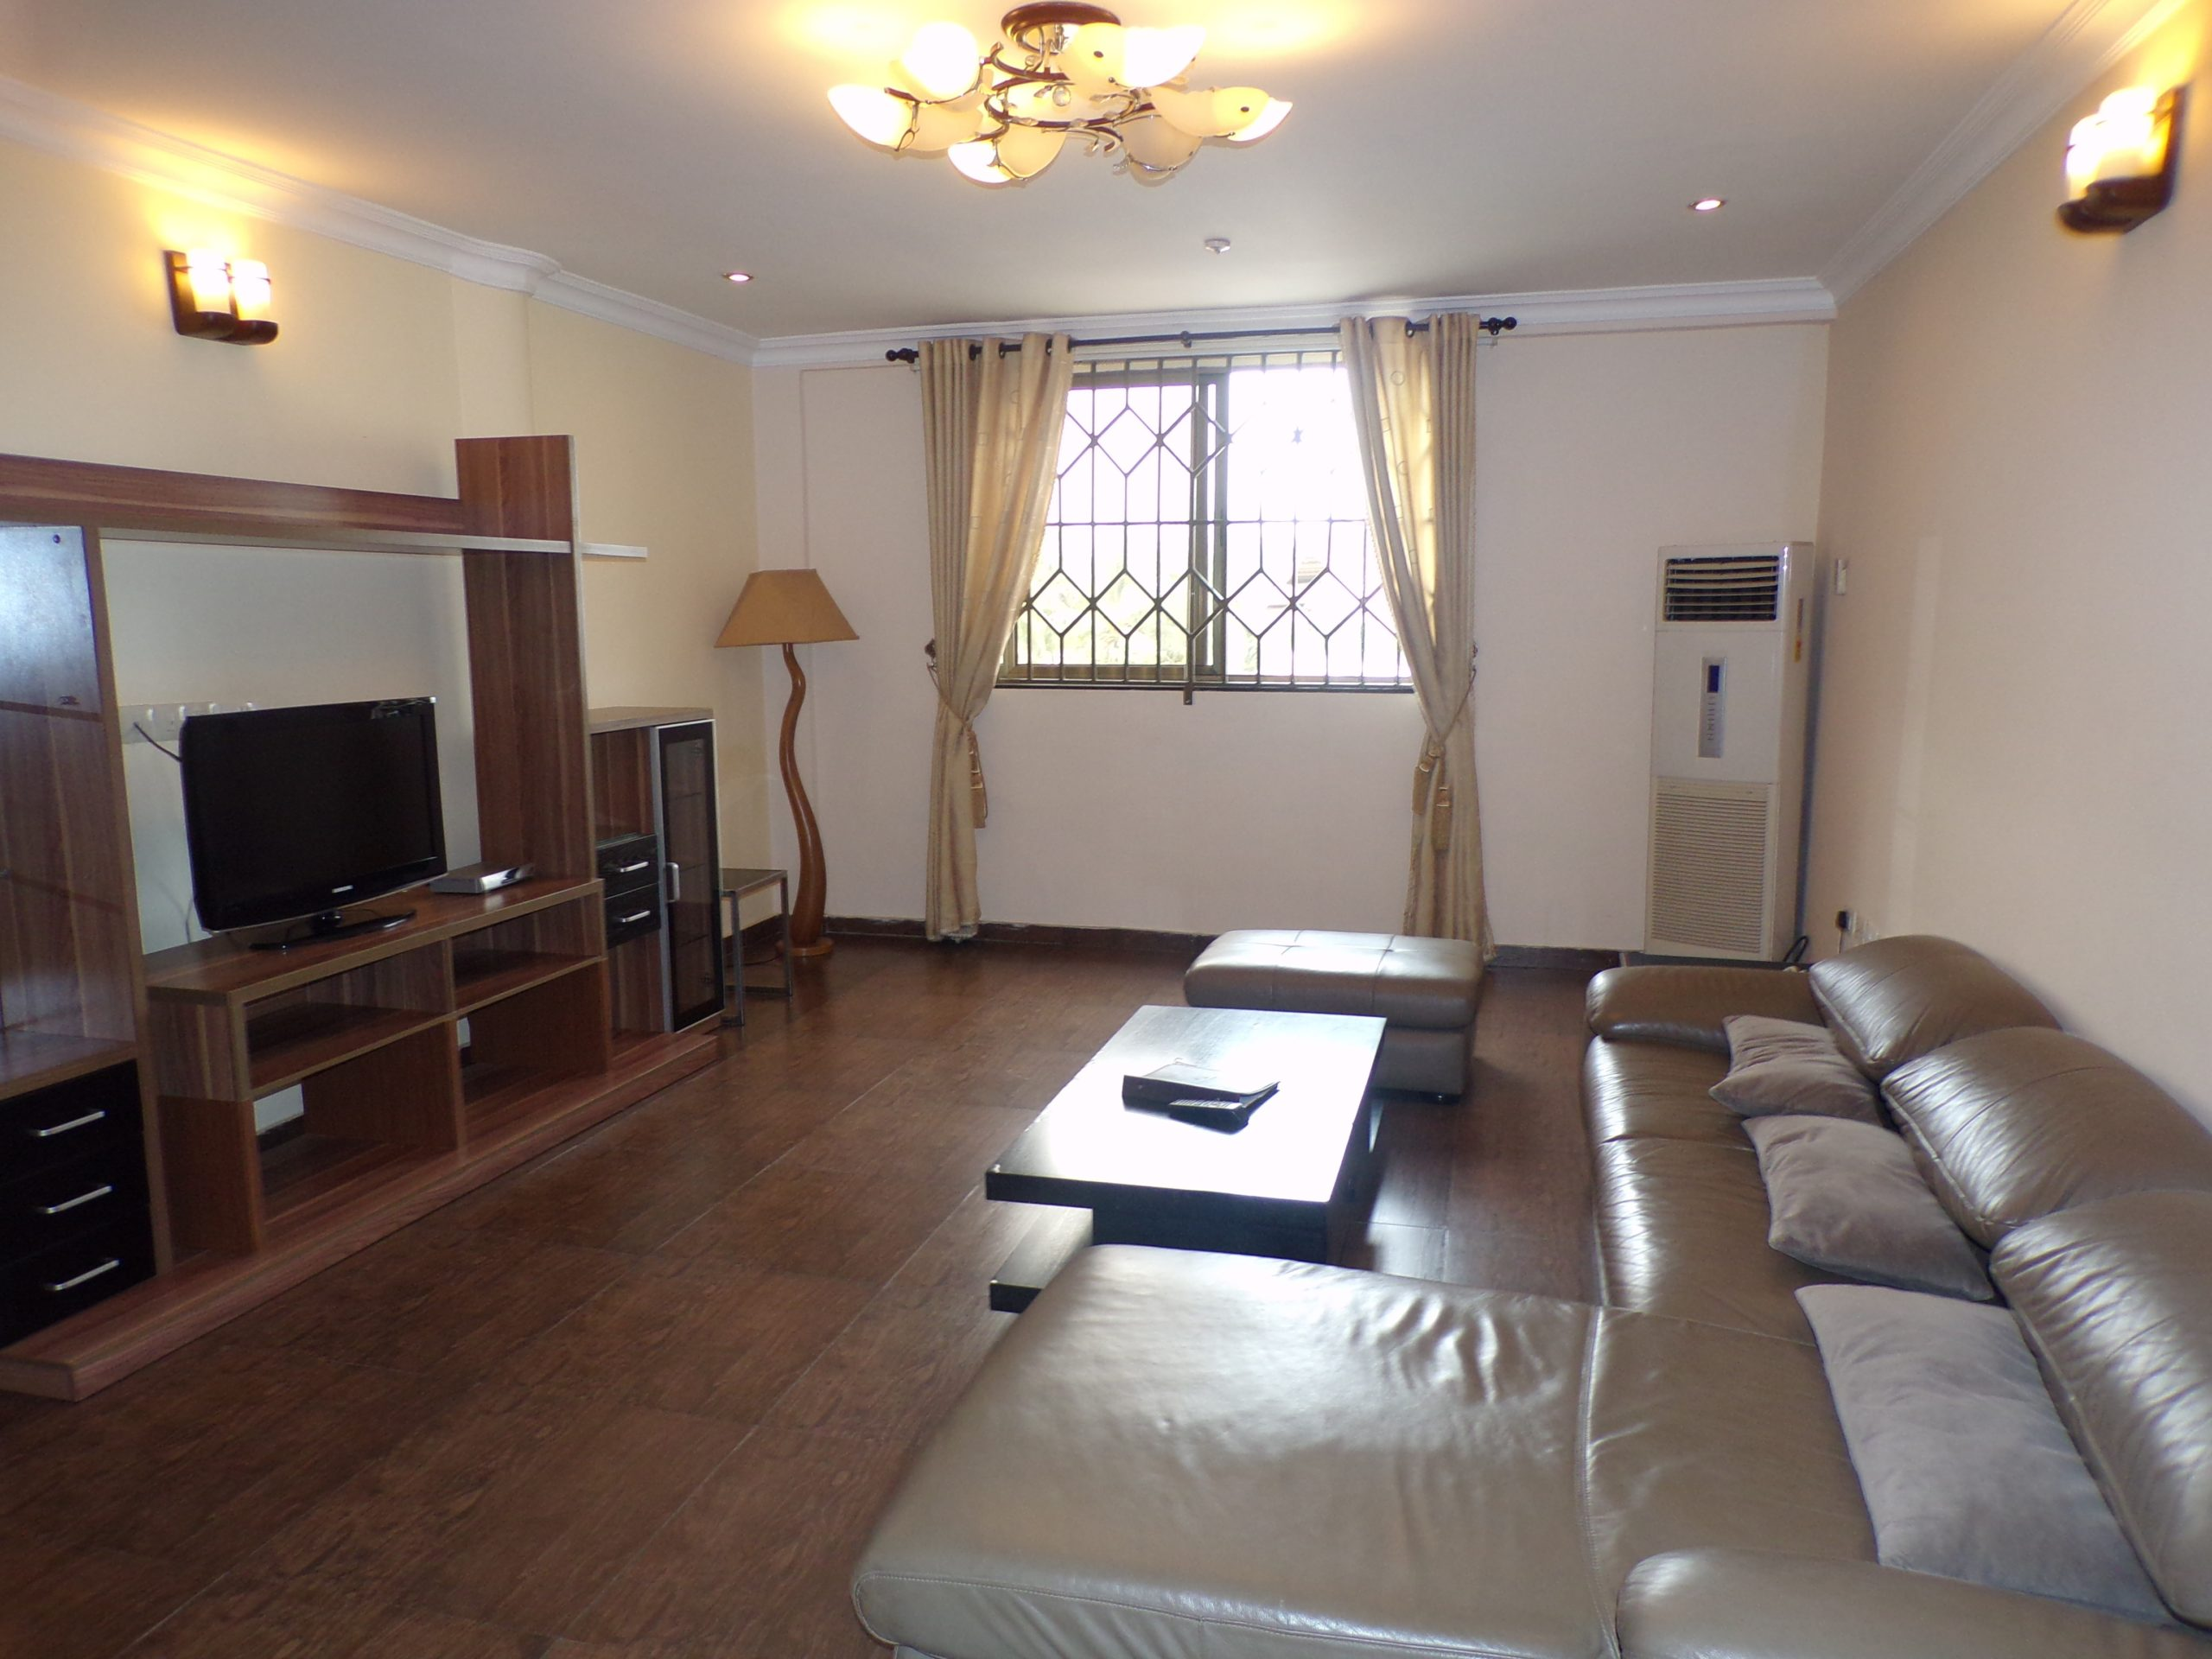 2 BEDROOM FURNISHED APARTMENT FOR RENT AT AIRPORT RESIDENTIAL